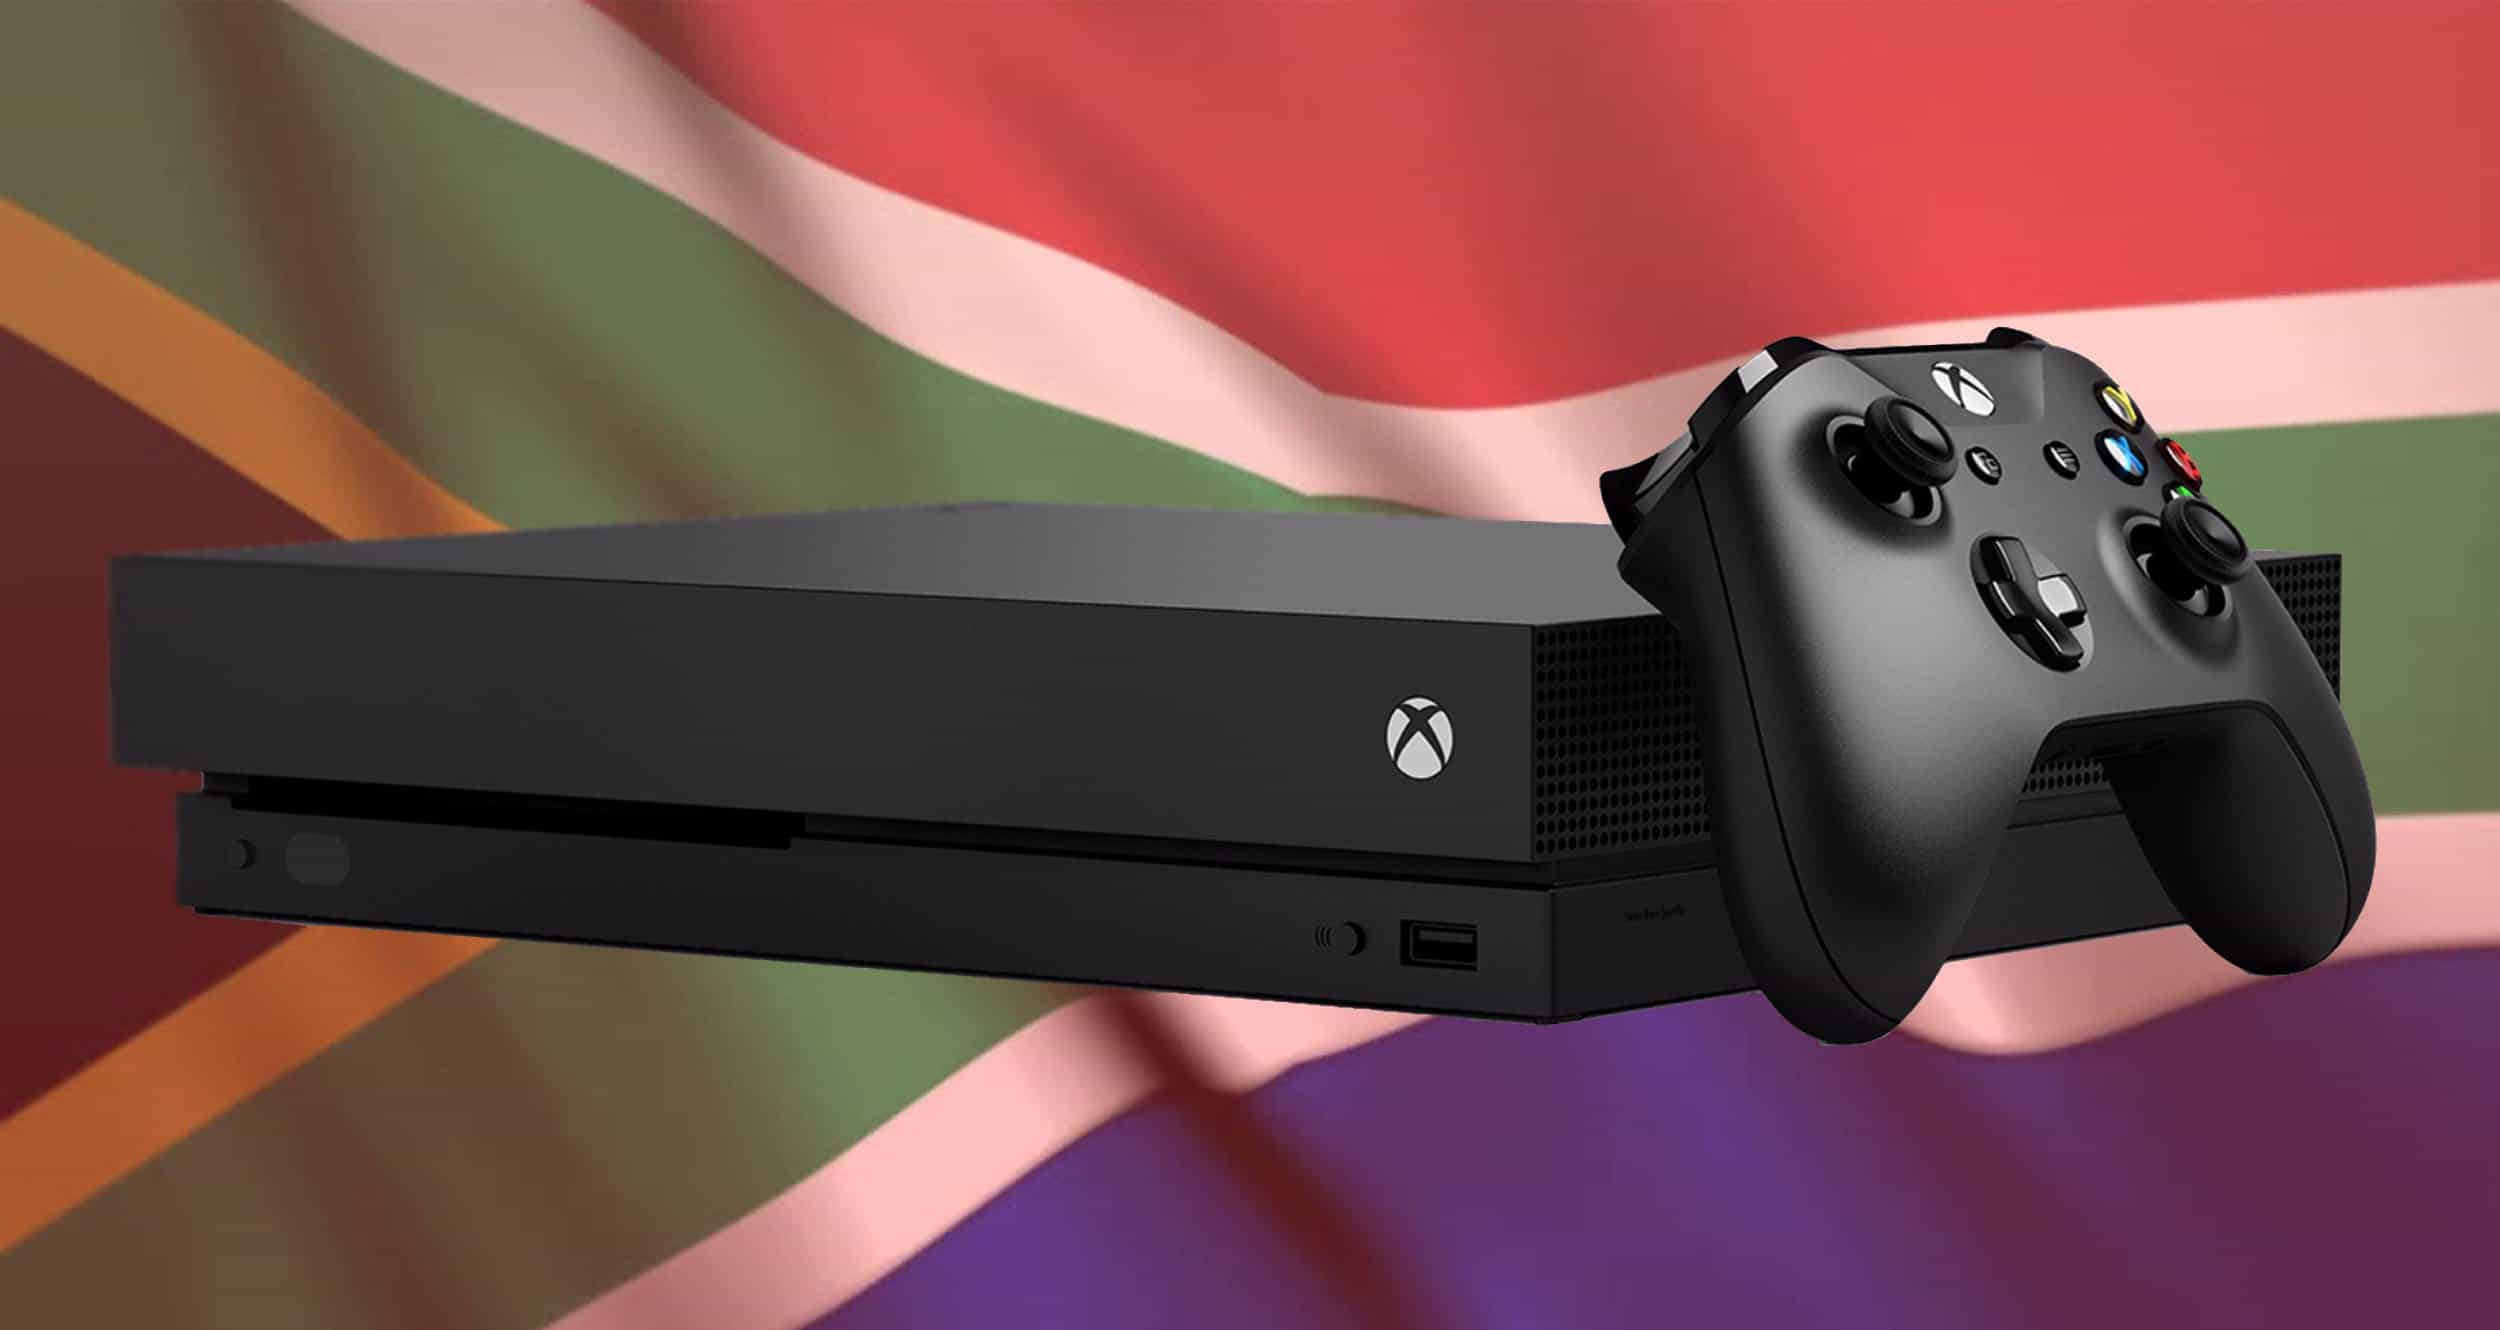 GamingTechnology Xbox One X South Africa Arrives in December with R7499 Pre Order Price By Hans Haupt- 6 October 2017 0